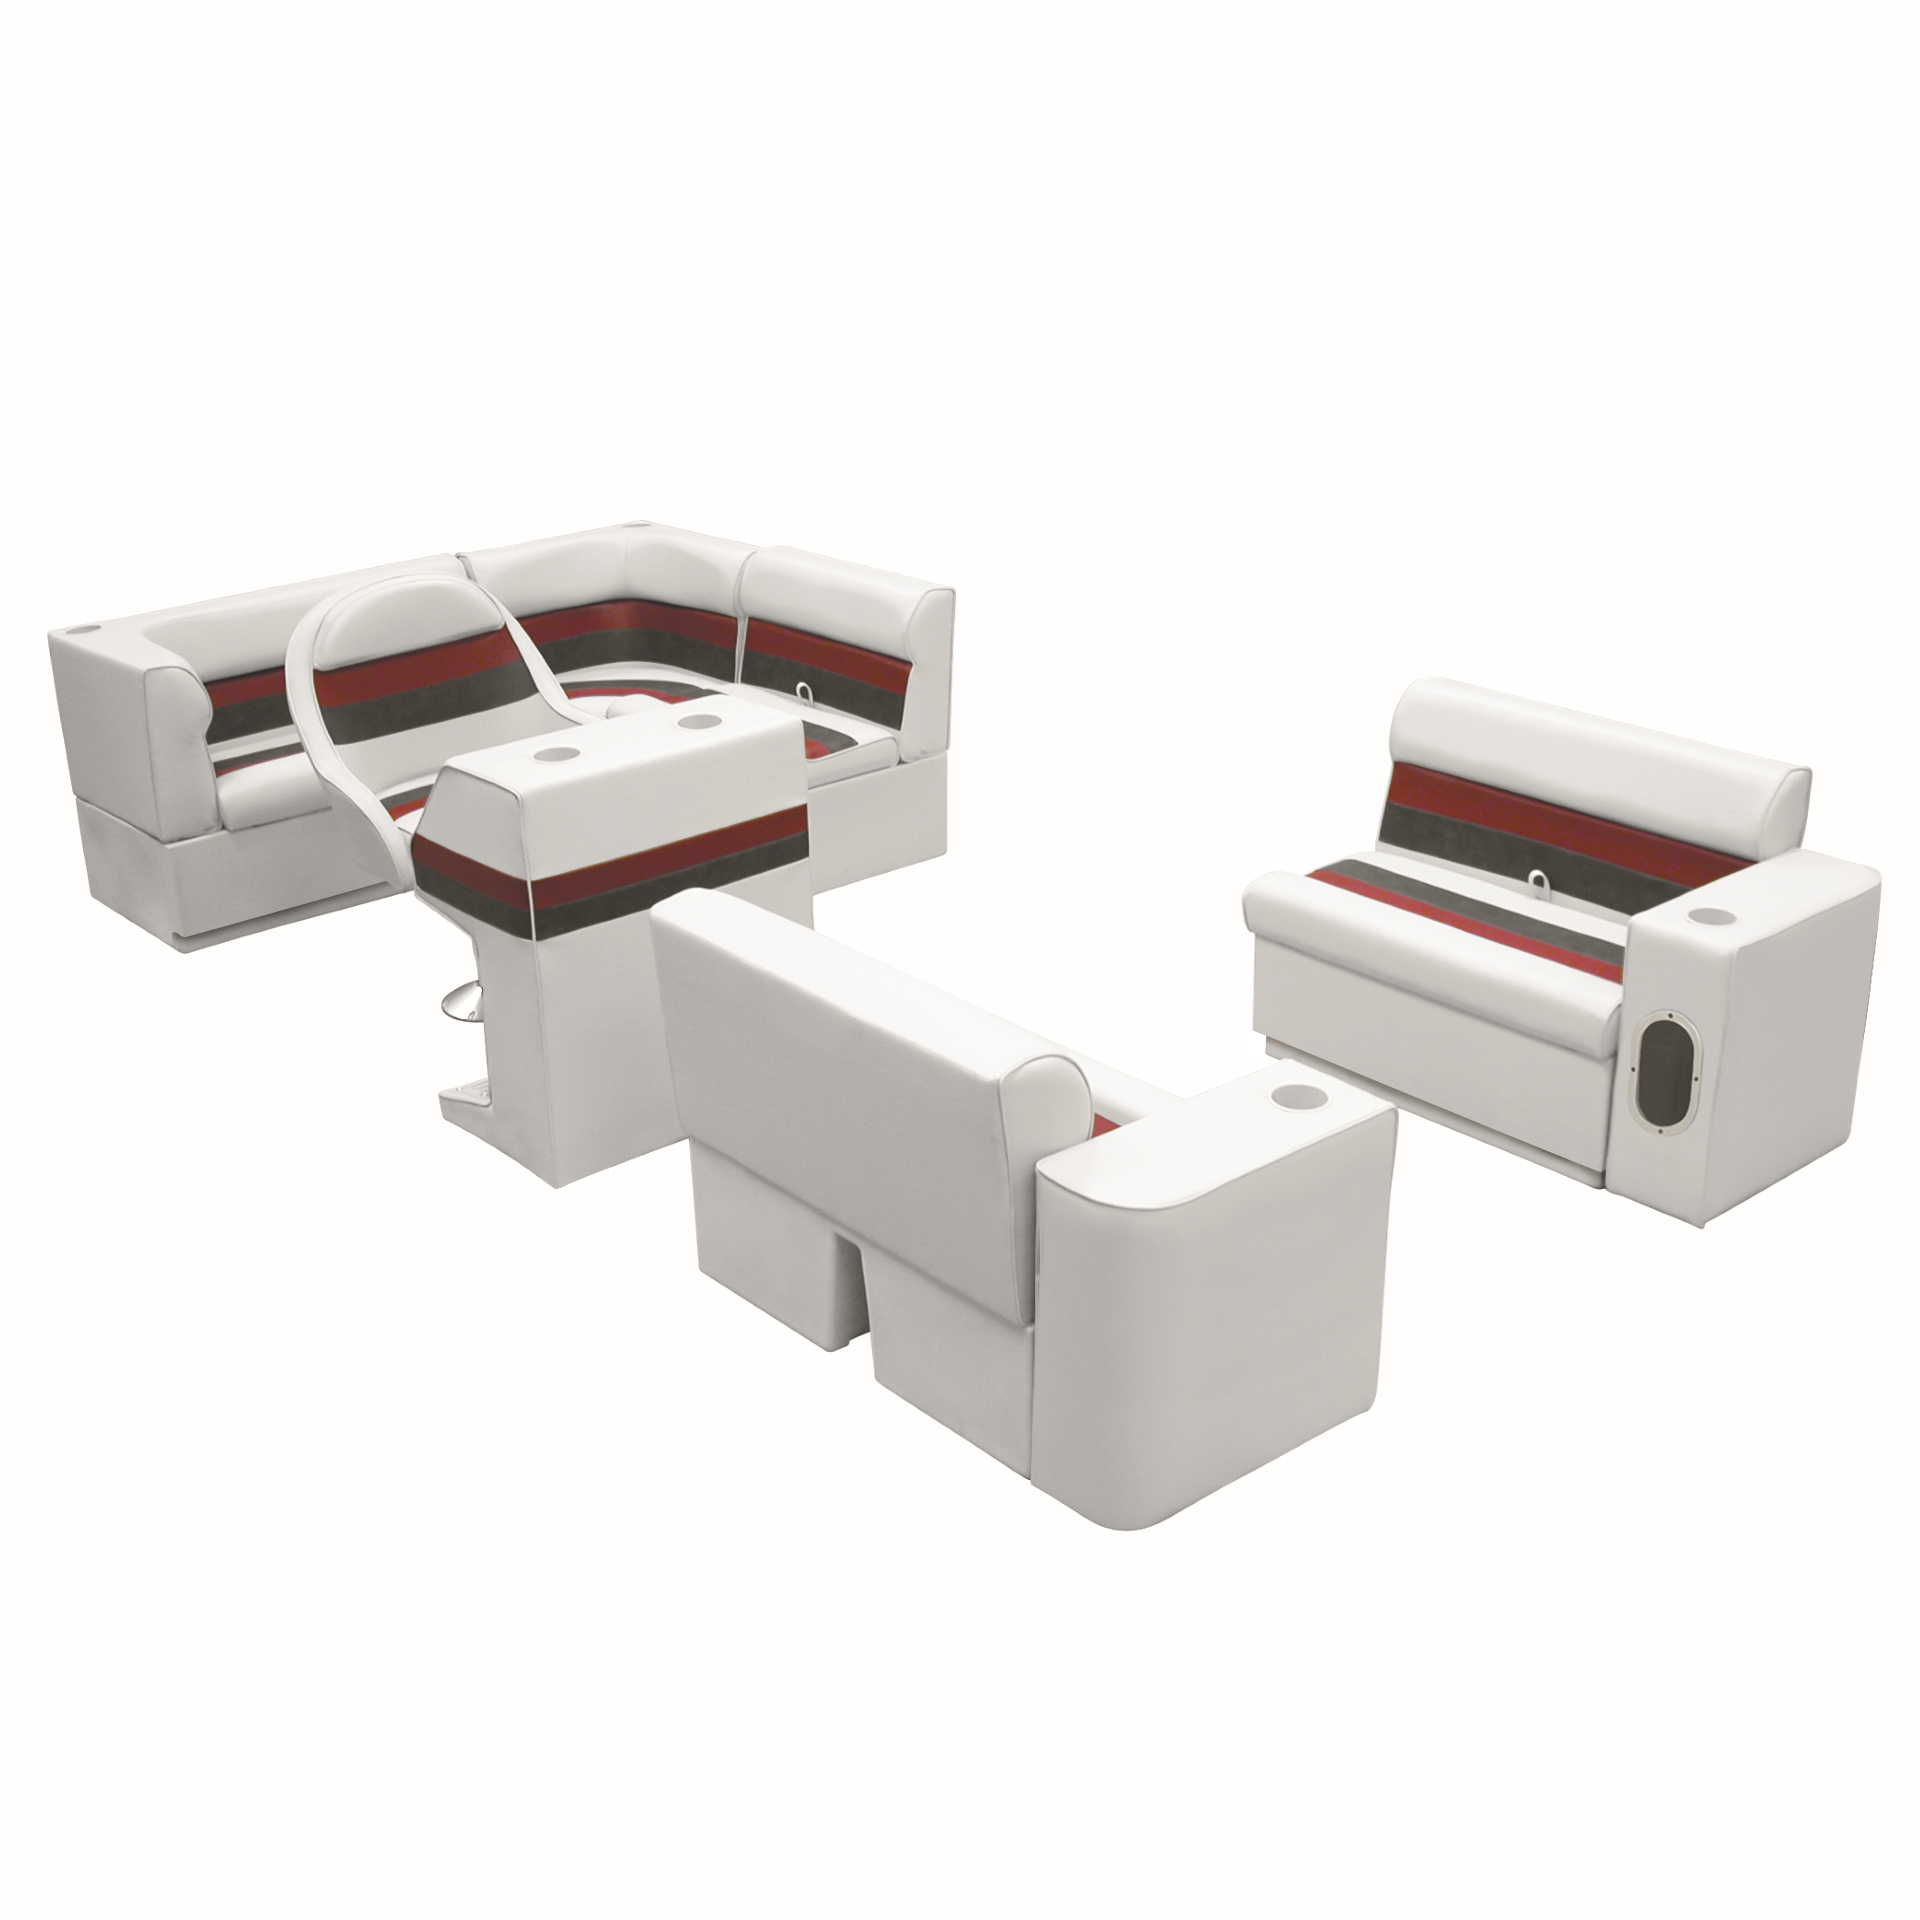 Deluxe Pontoon Furniture with Toe Kick Base, Group 1 Package, White/Red/Charcoal